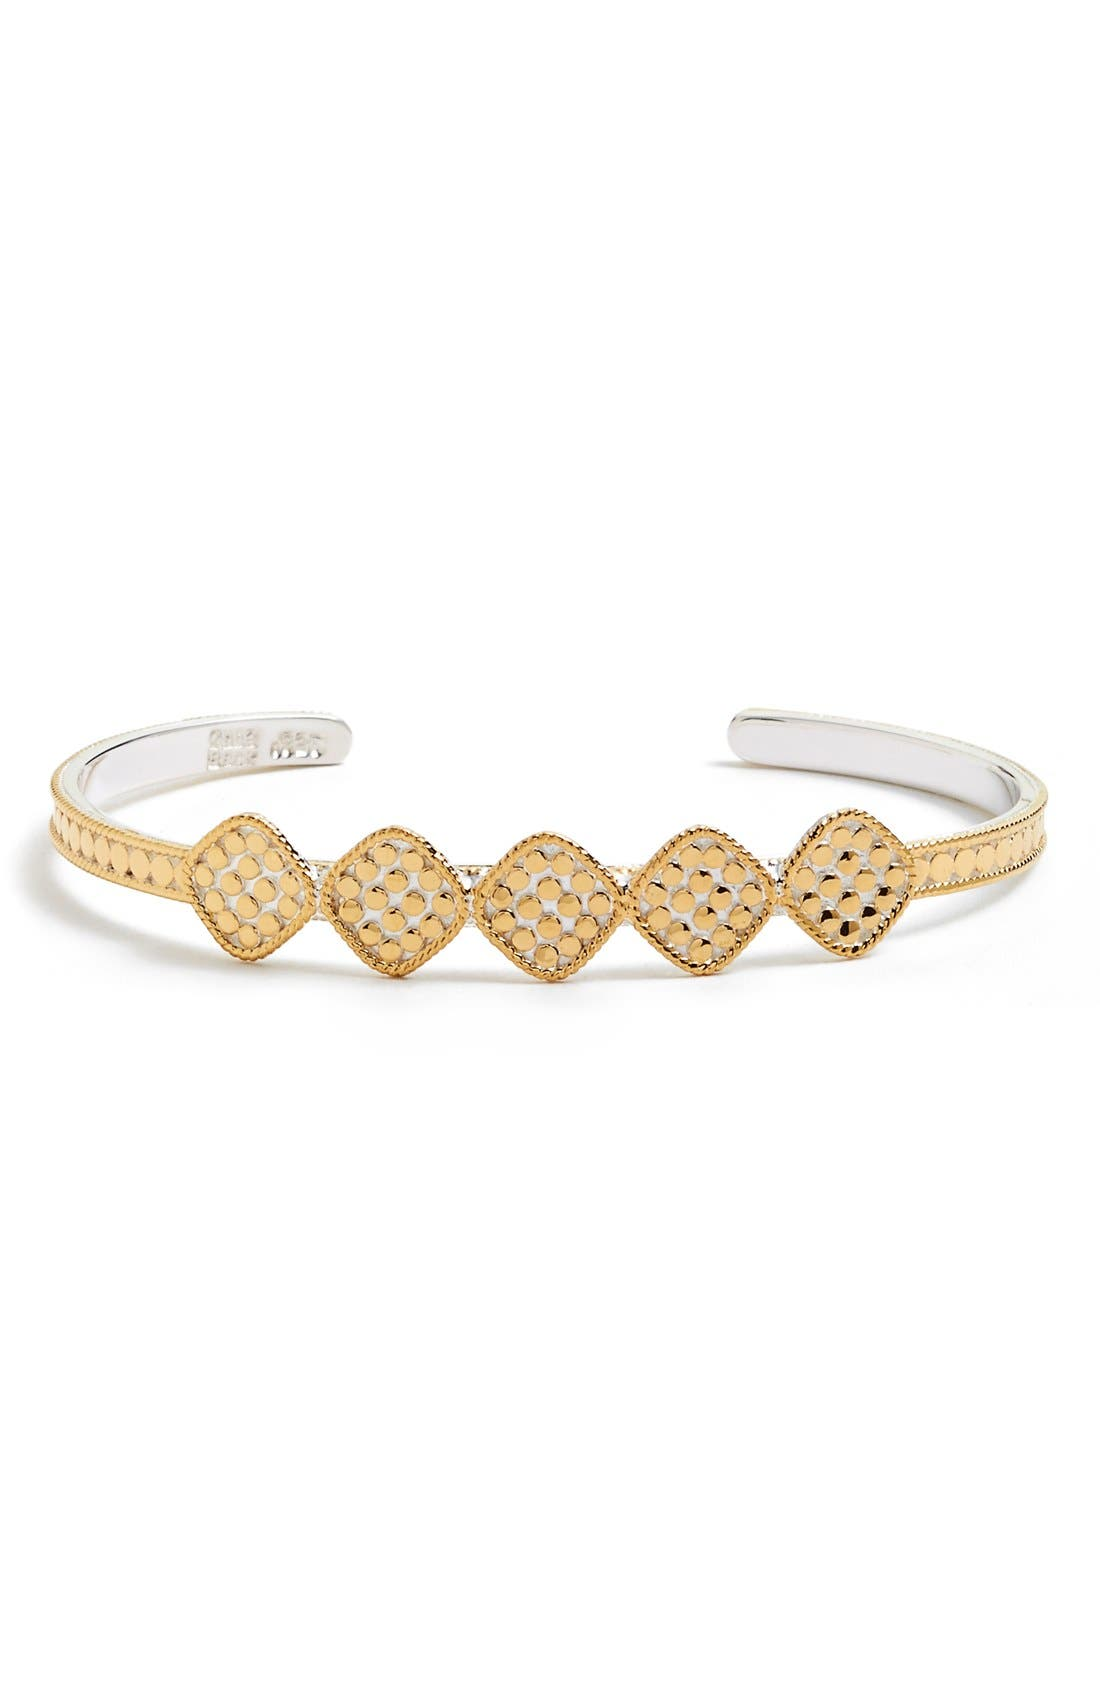 'Gili' Cushion Skinny Cuff,                         Main,                         color, Gold/ Silver